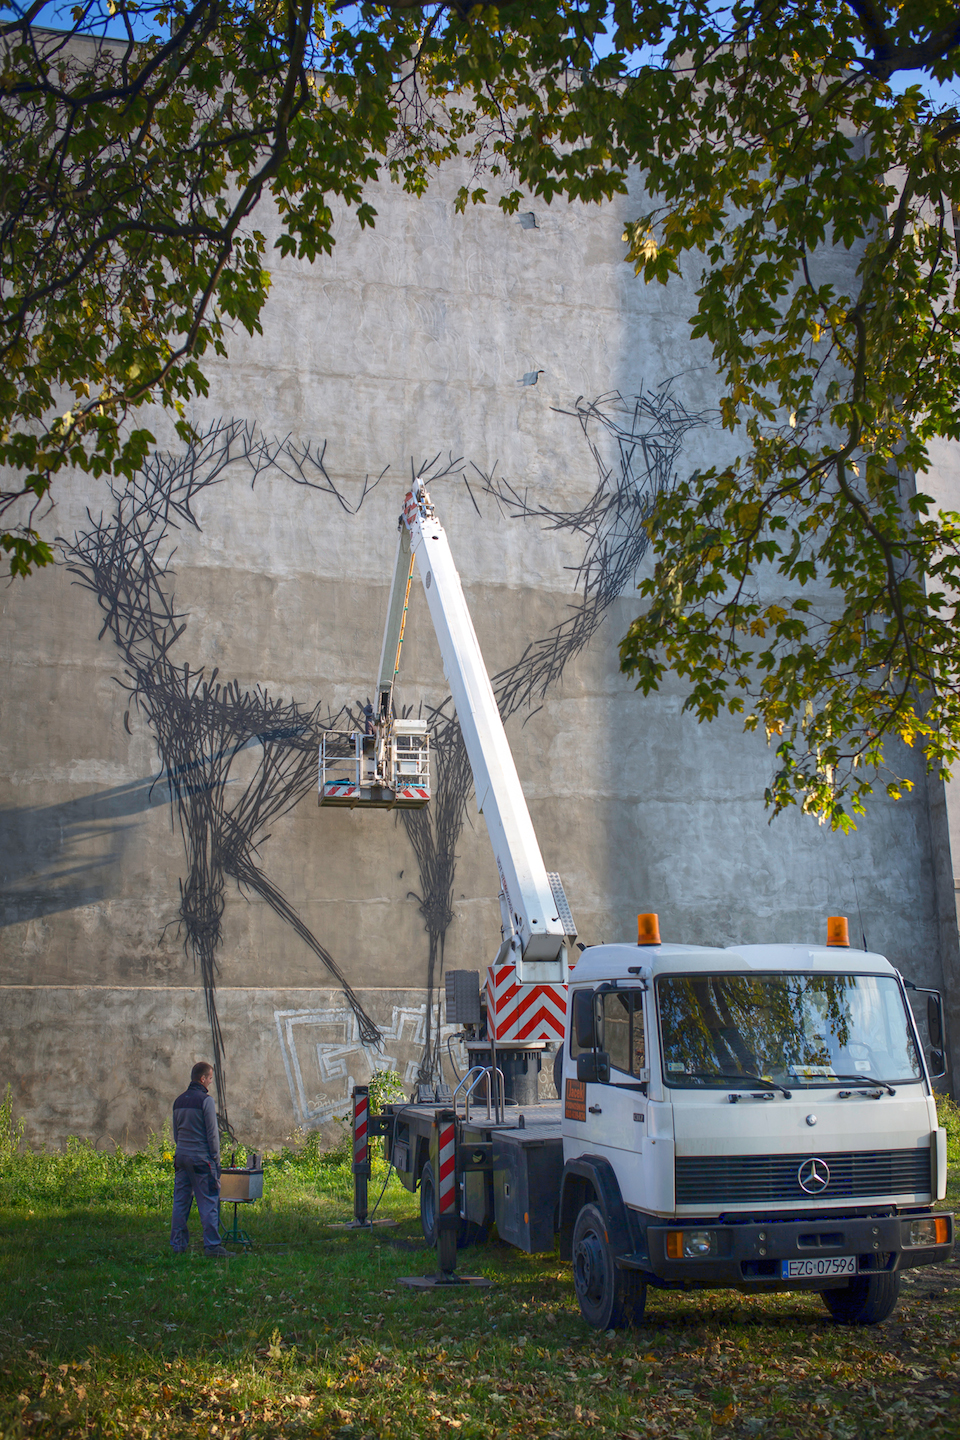 Street Art by DALEAST in Lodz, Poland in for Galeria Urban Forms project 3